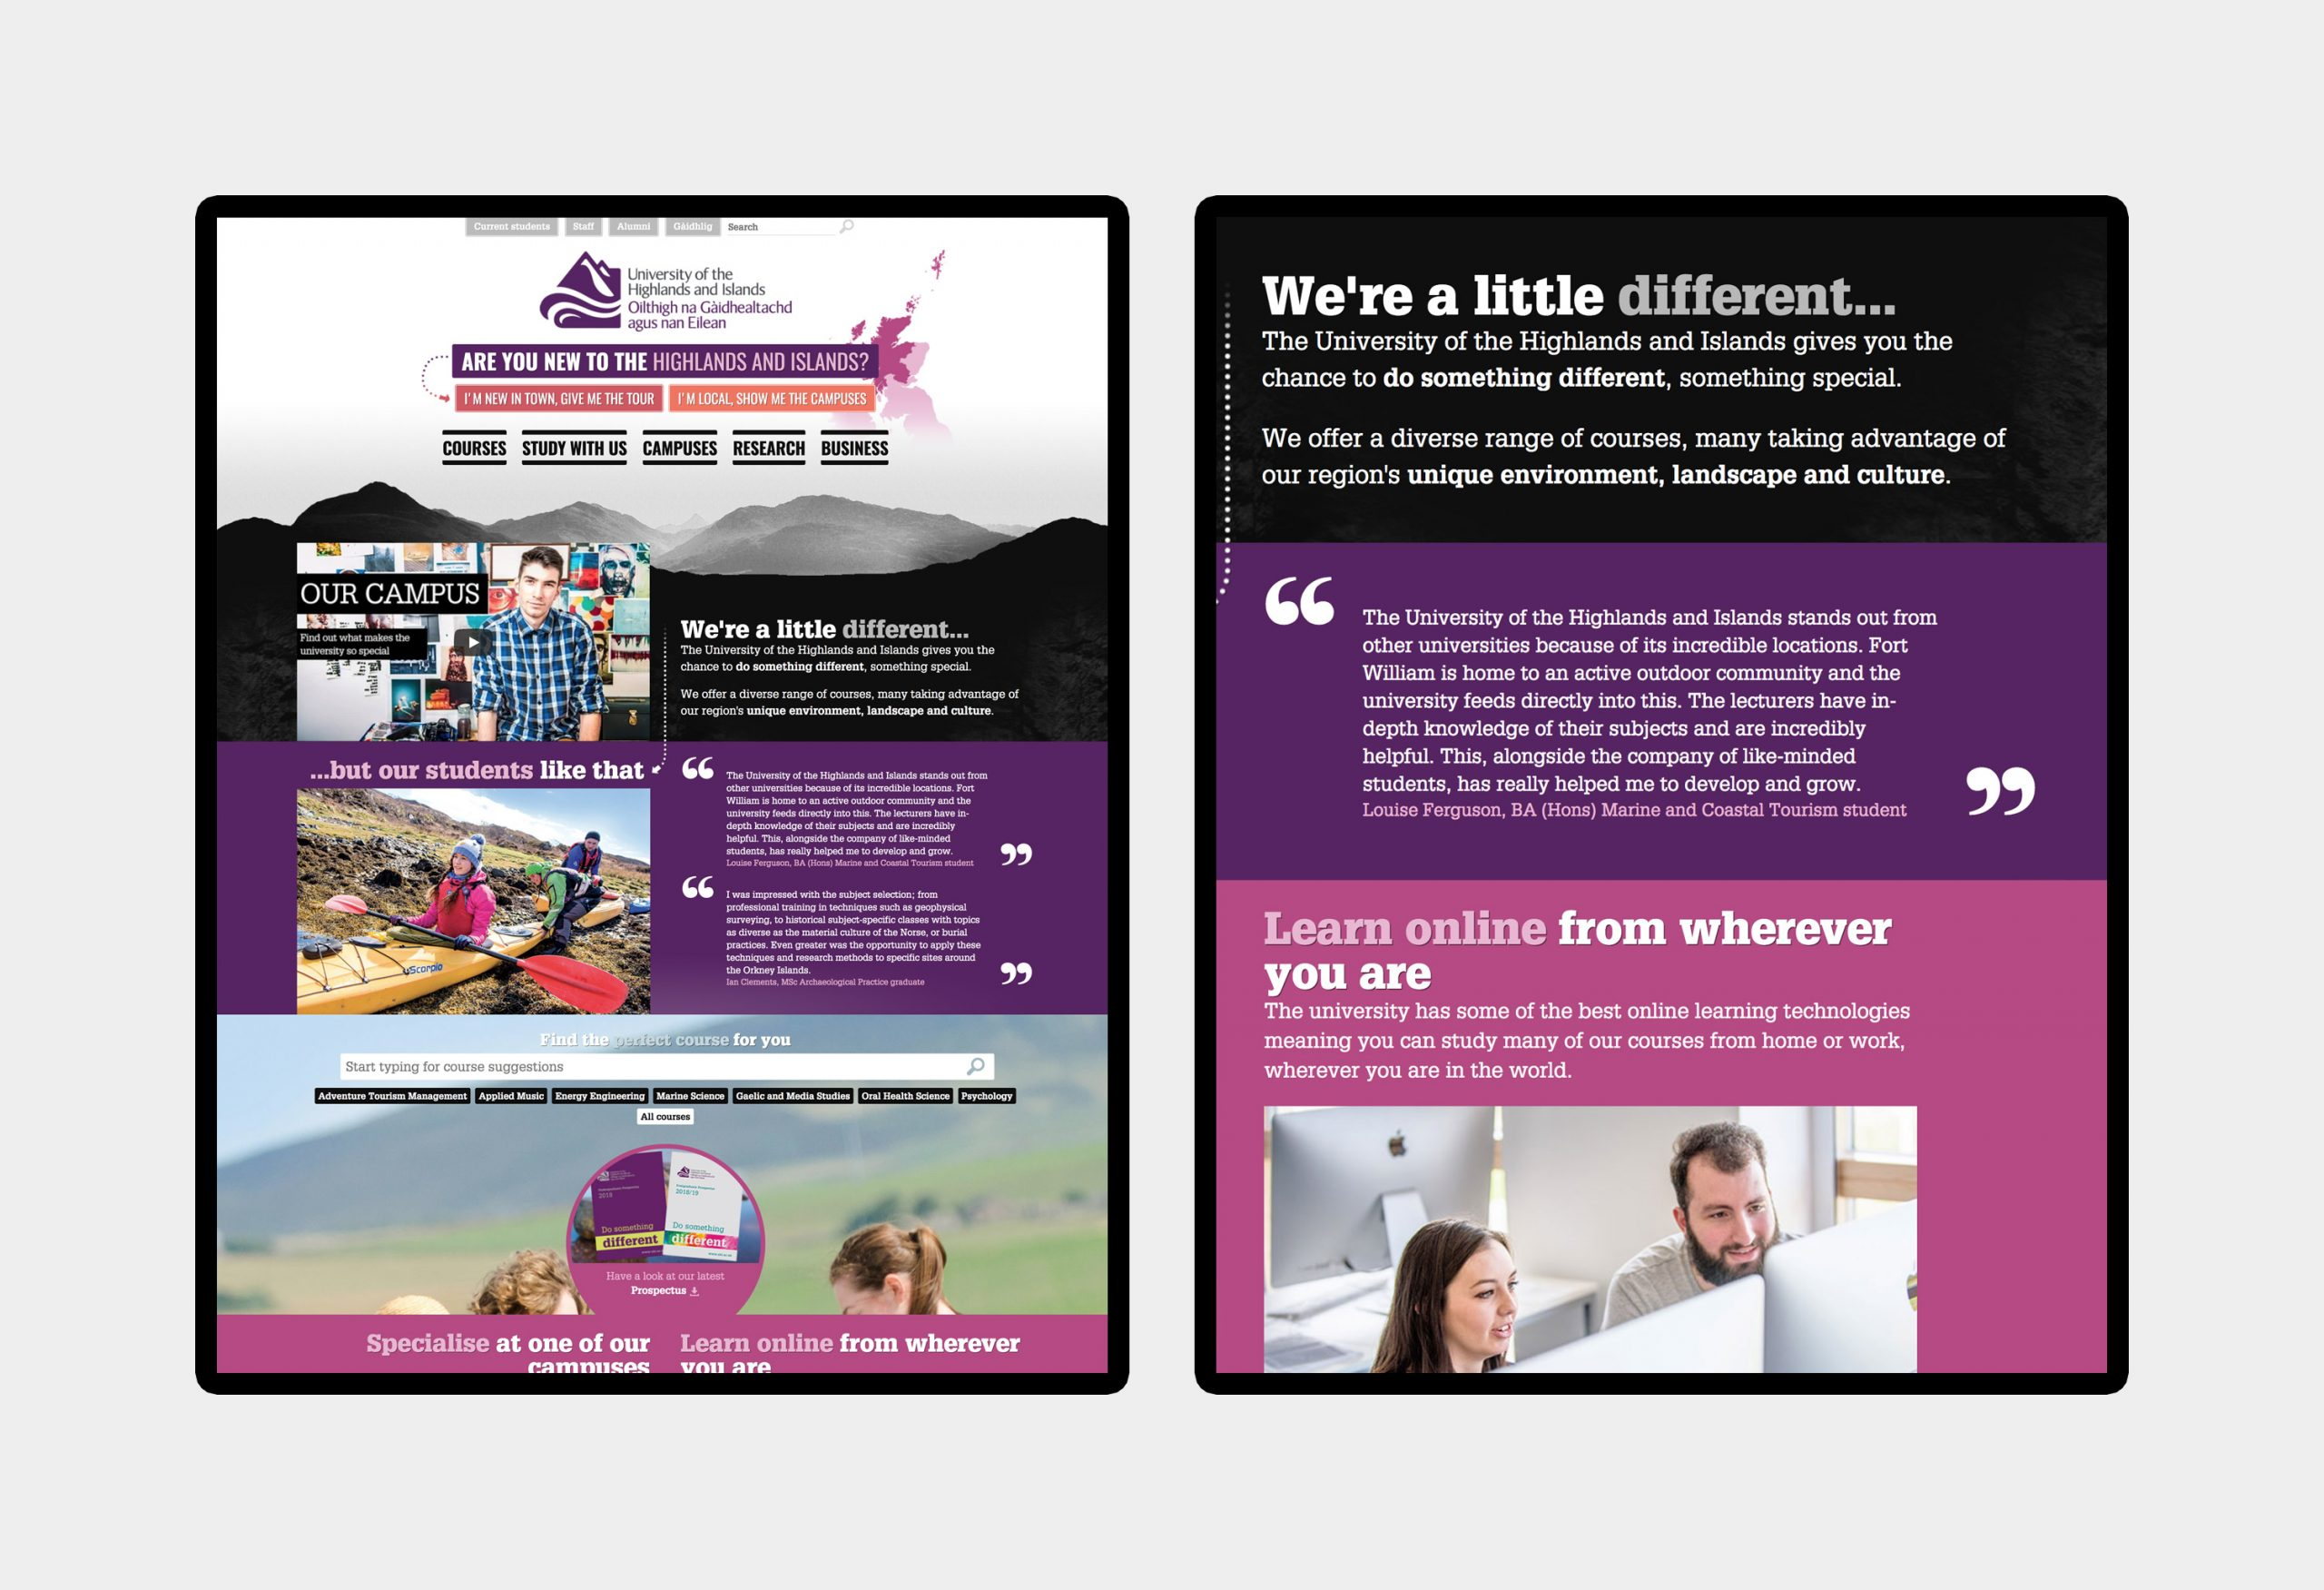 University of the Highlands and Islands - website design